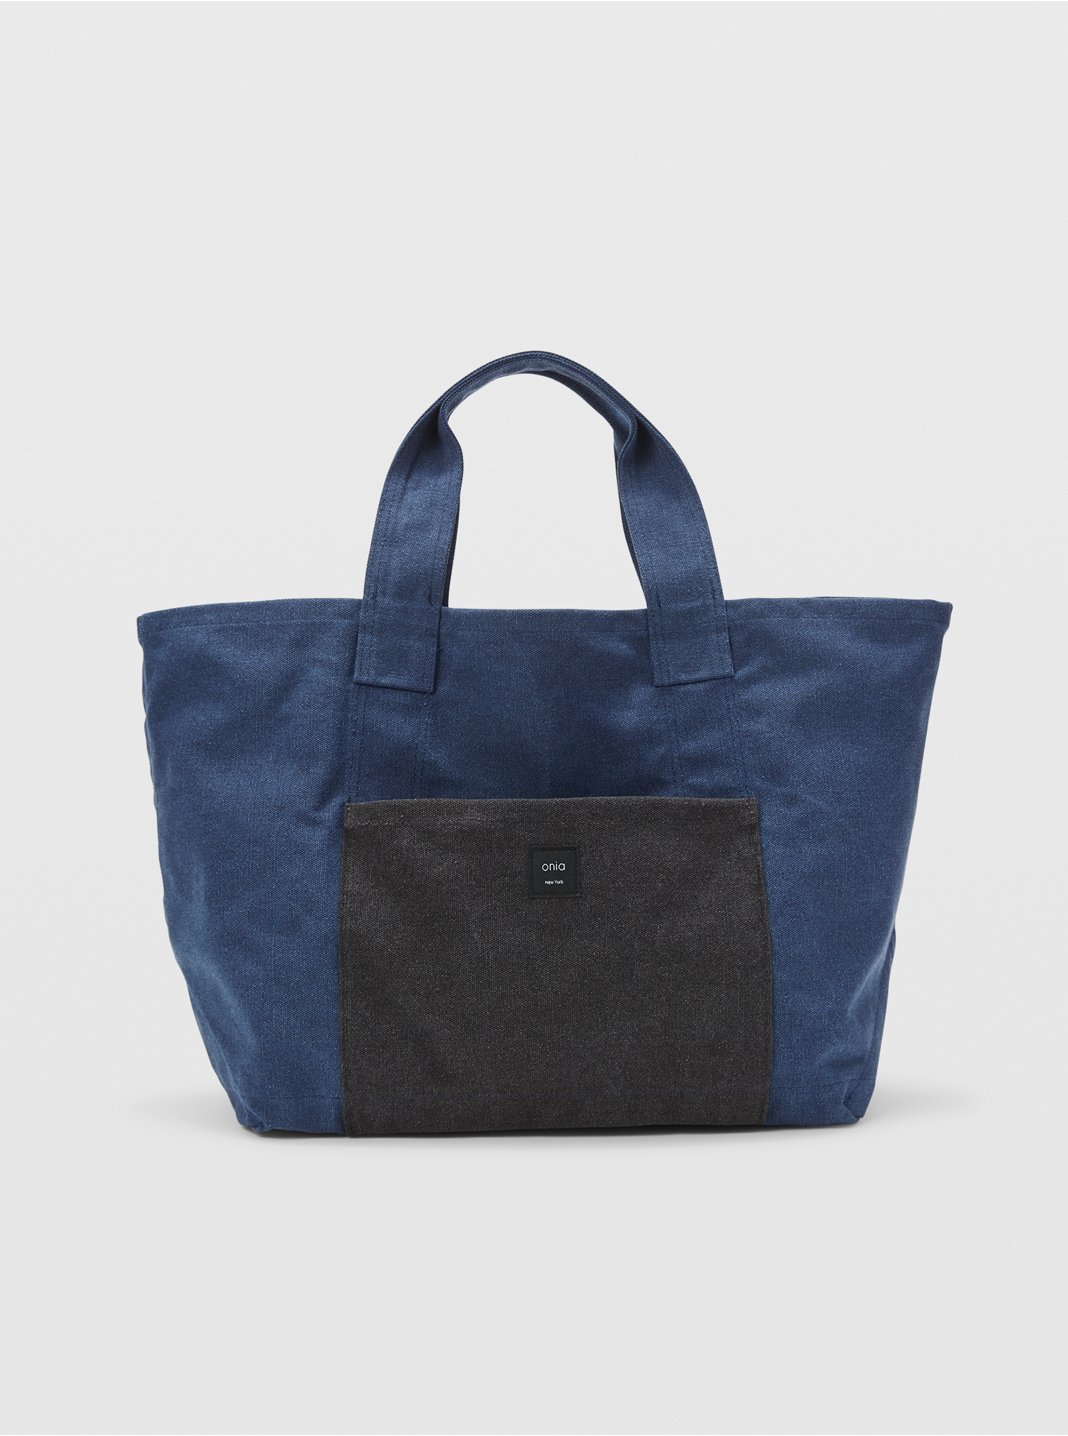 Onia Waxed Canvas Tote